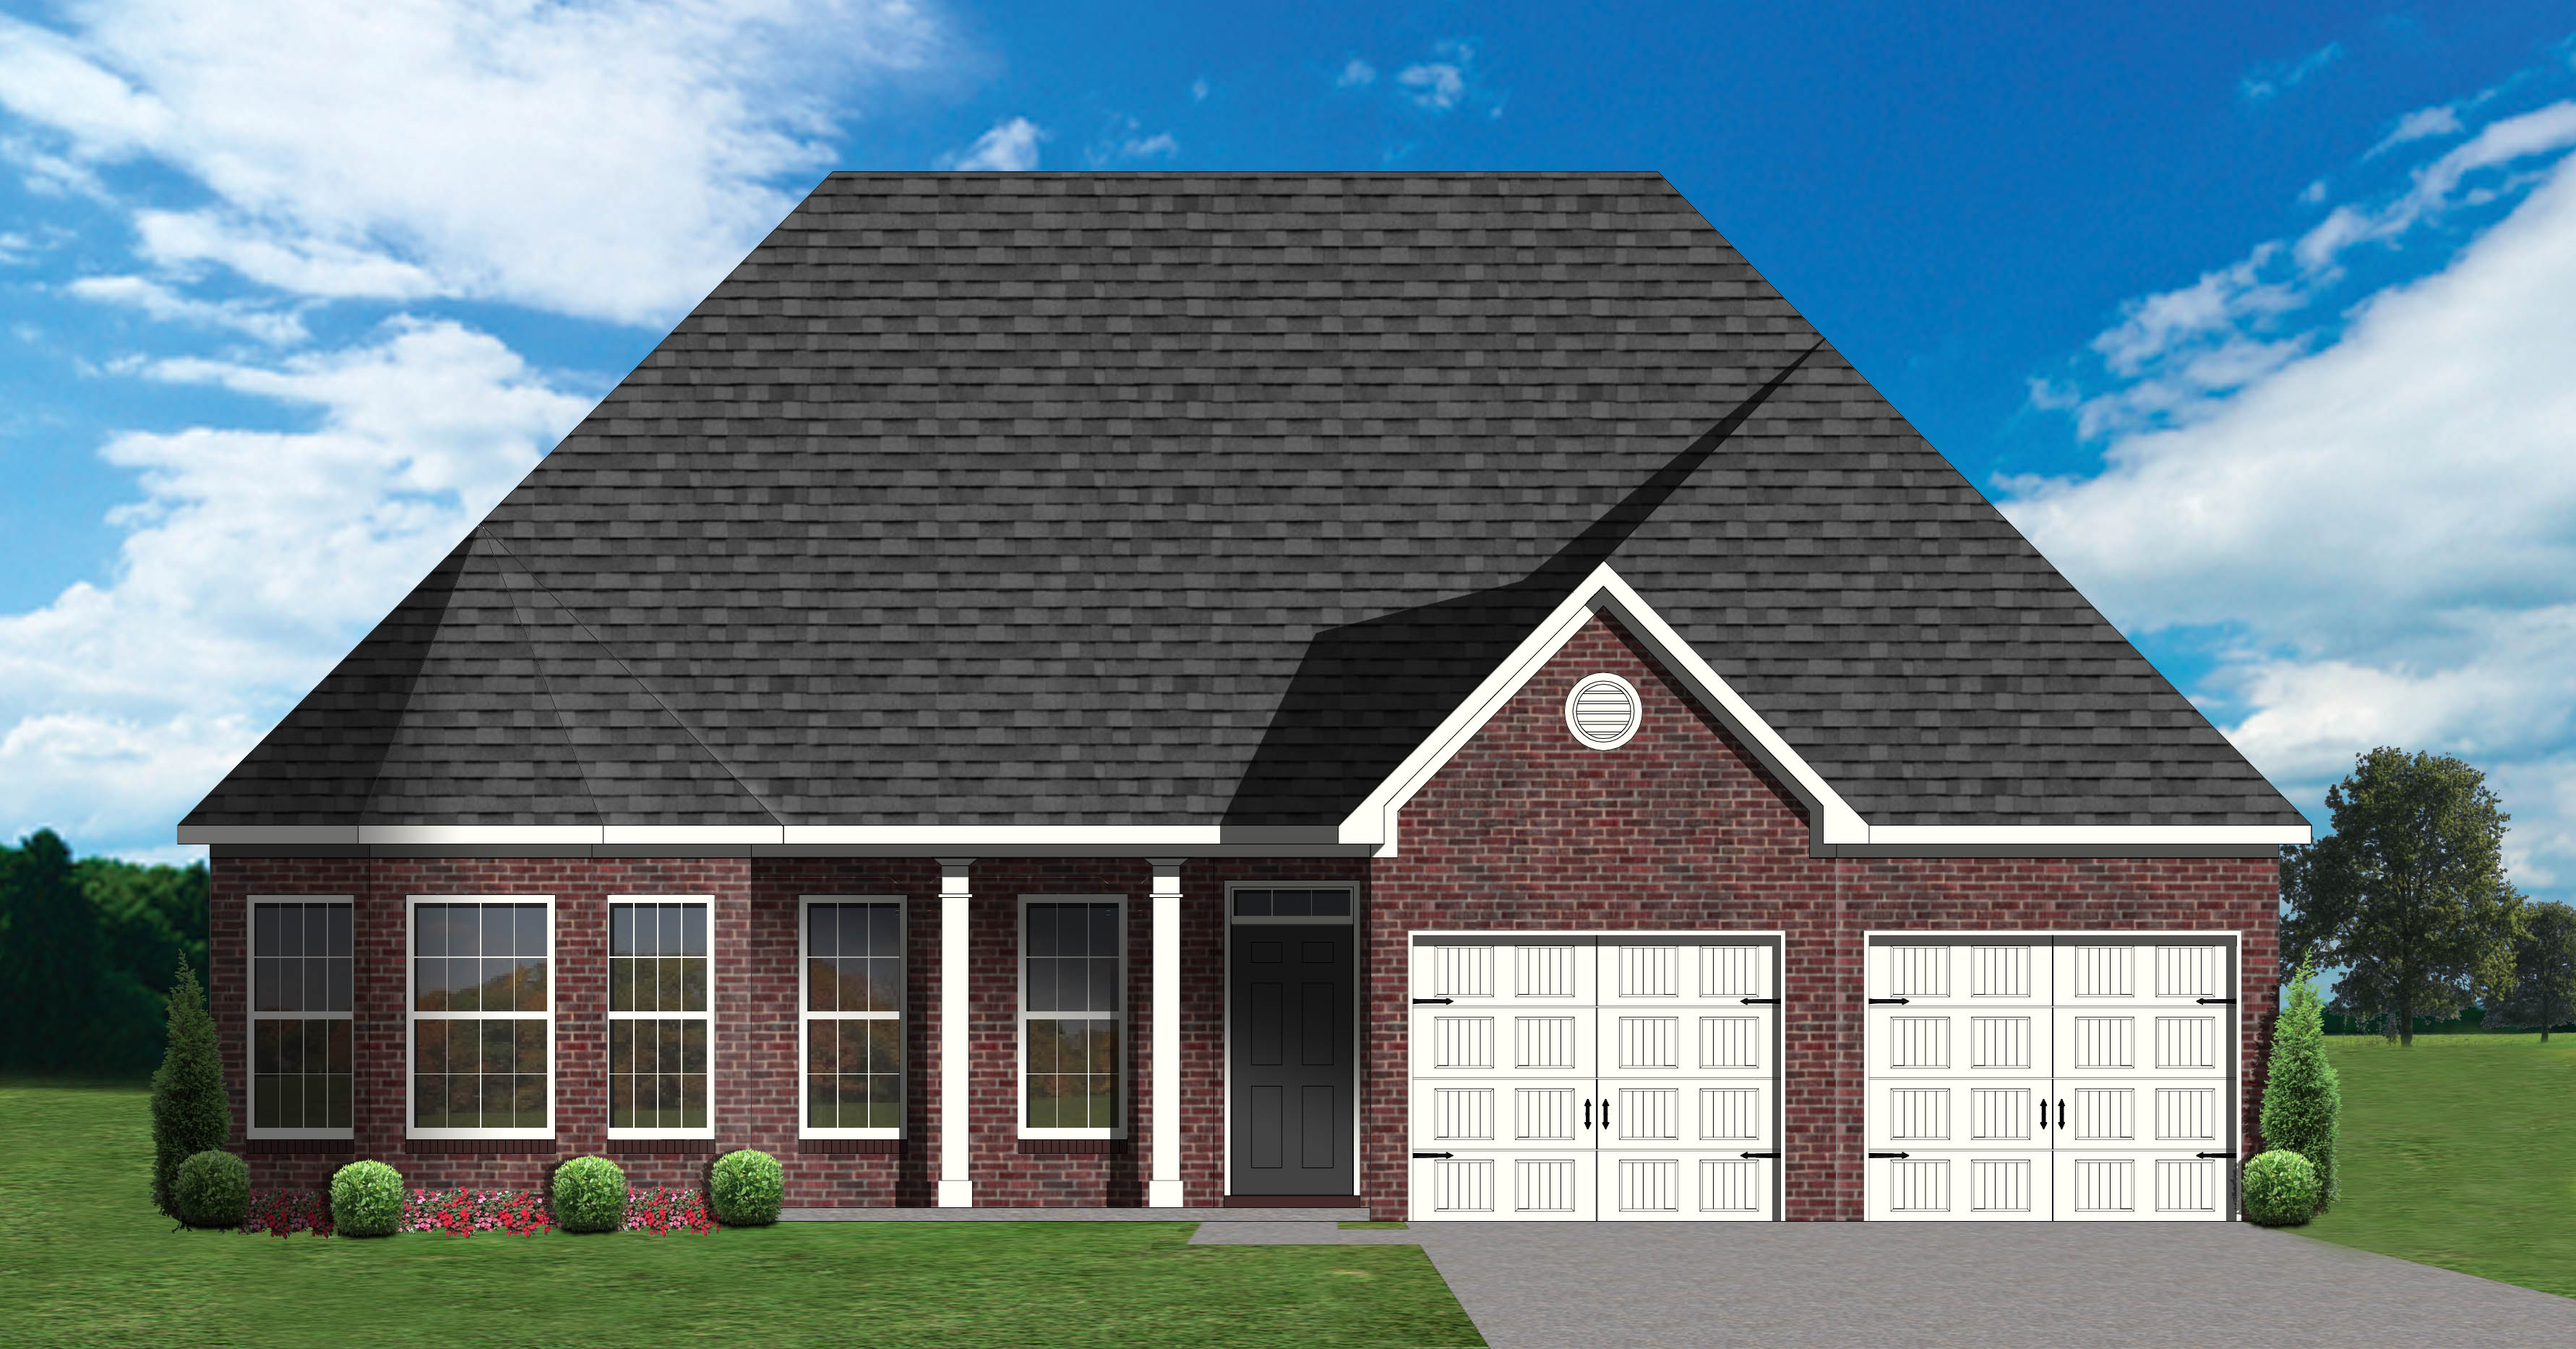 kentucky house plans 28 images kentucky house plans 28